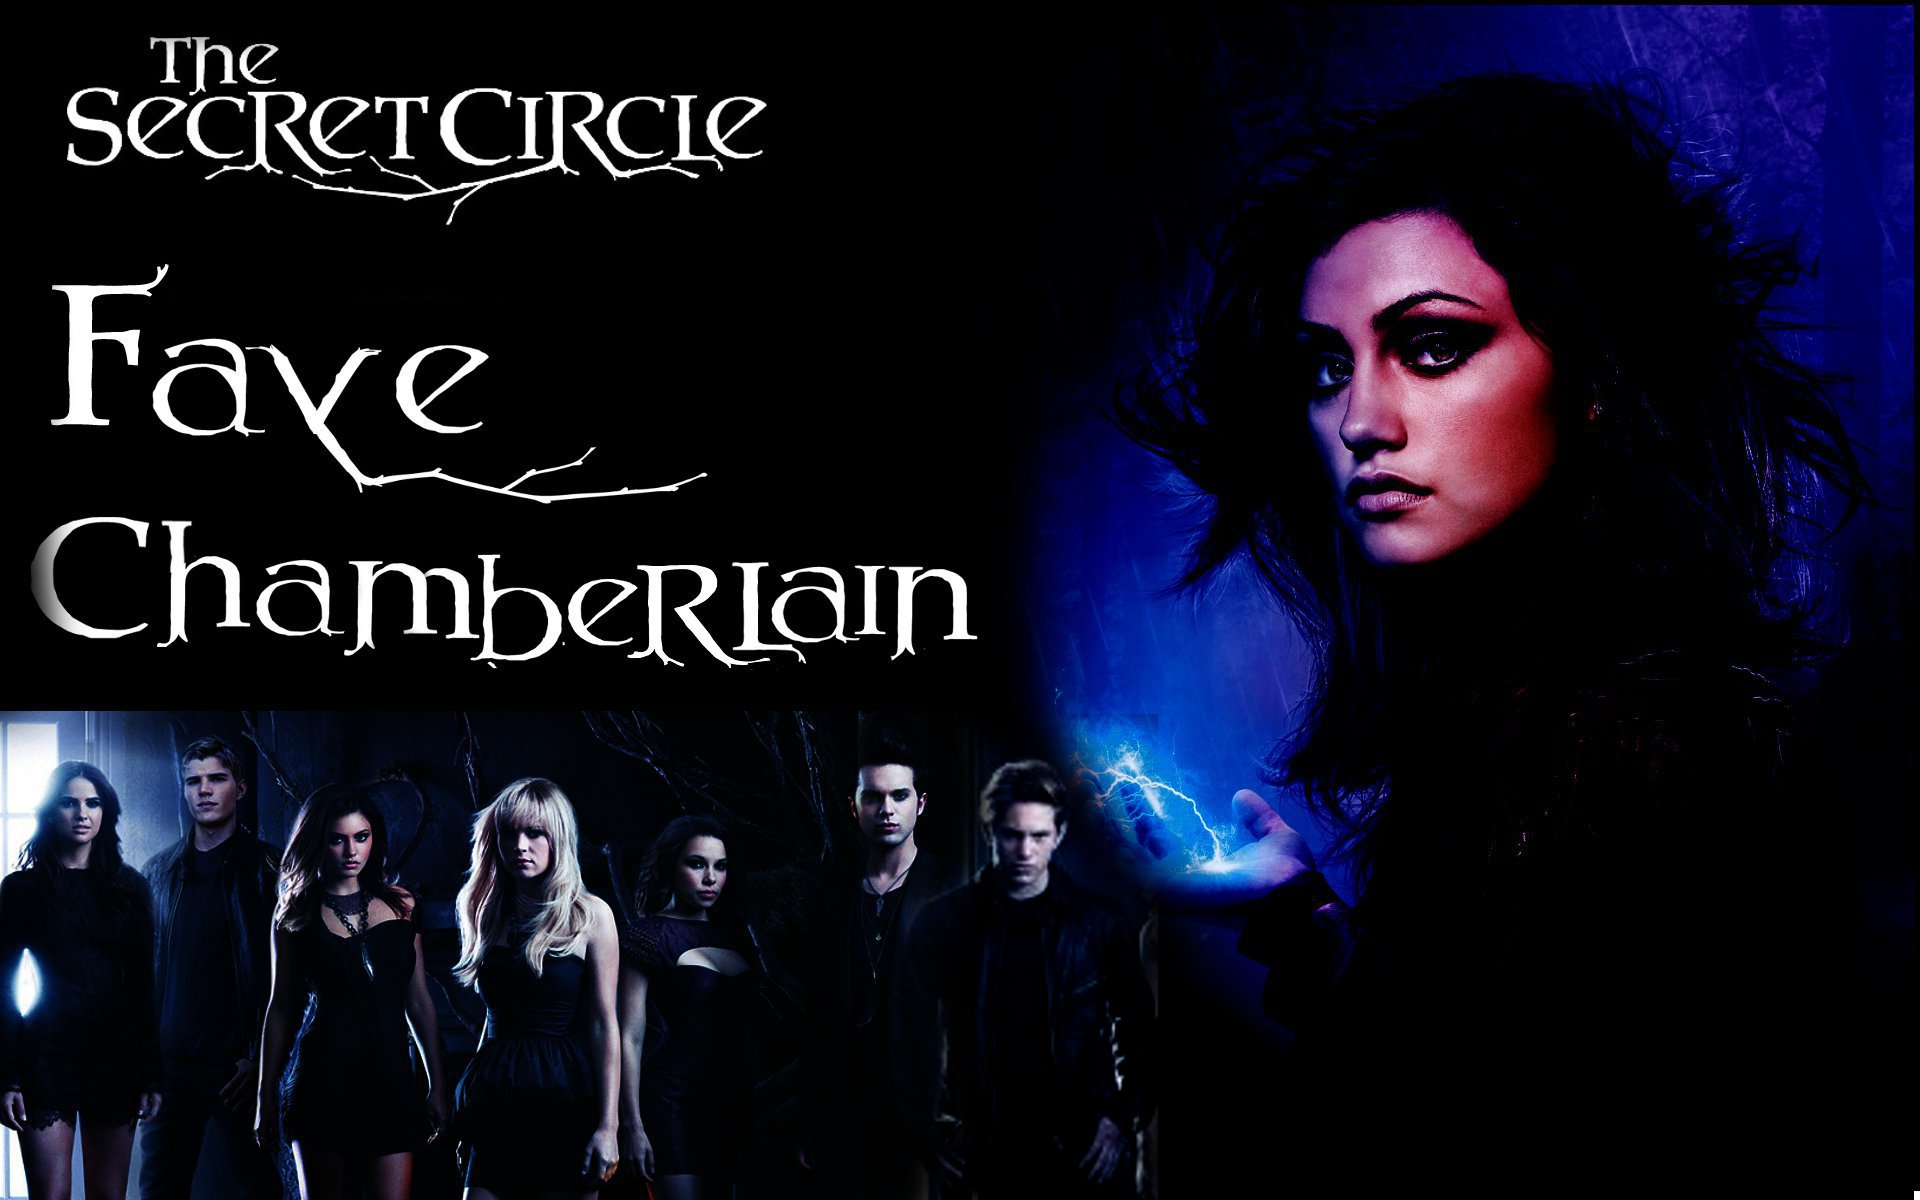 The secret circle tv 2 5.3